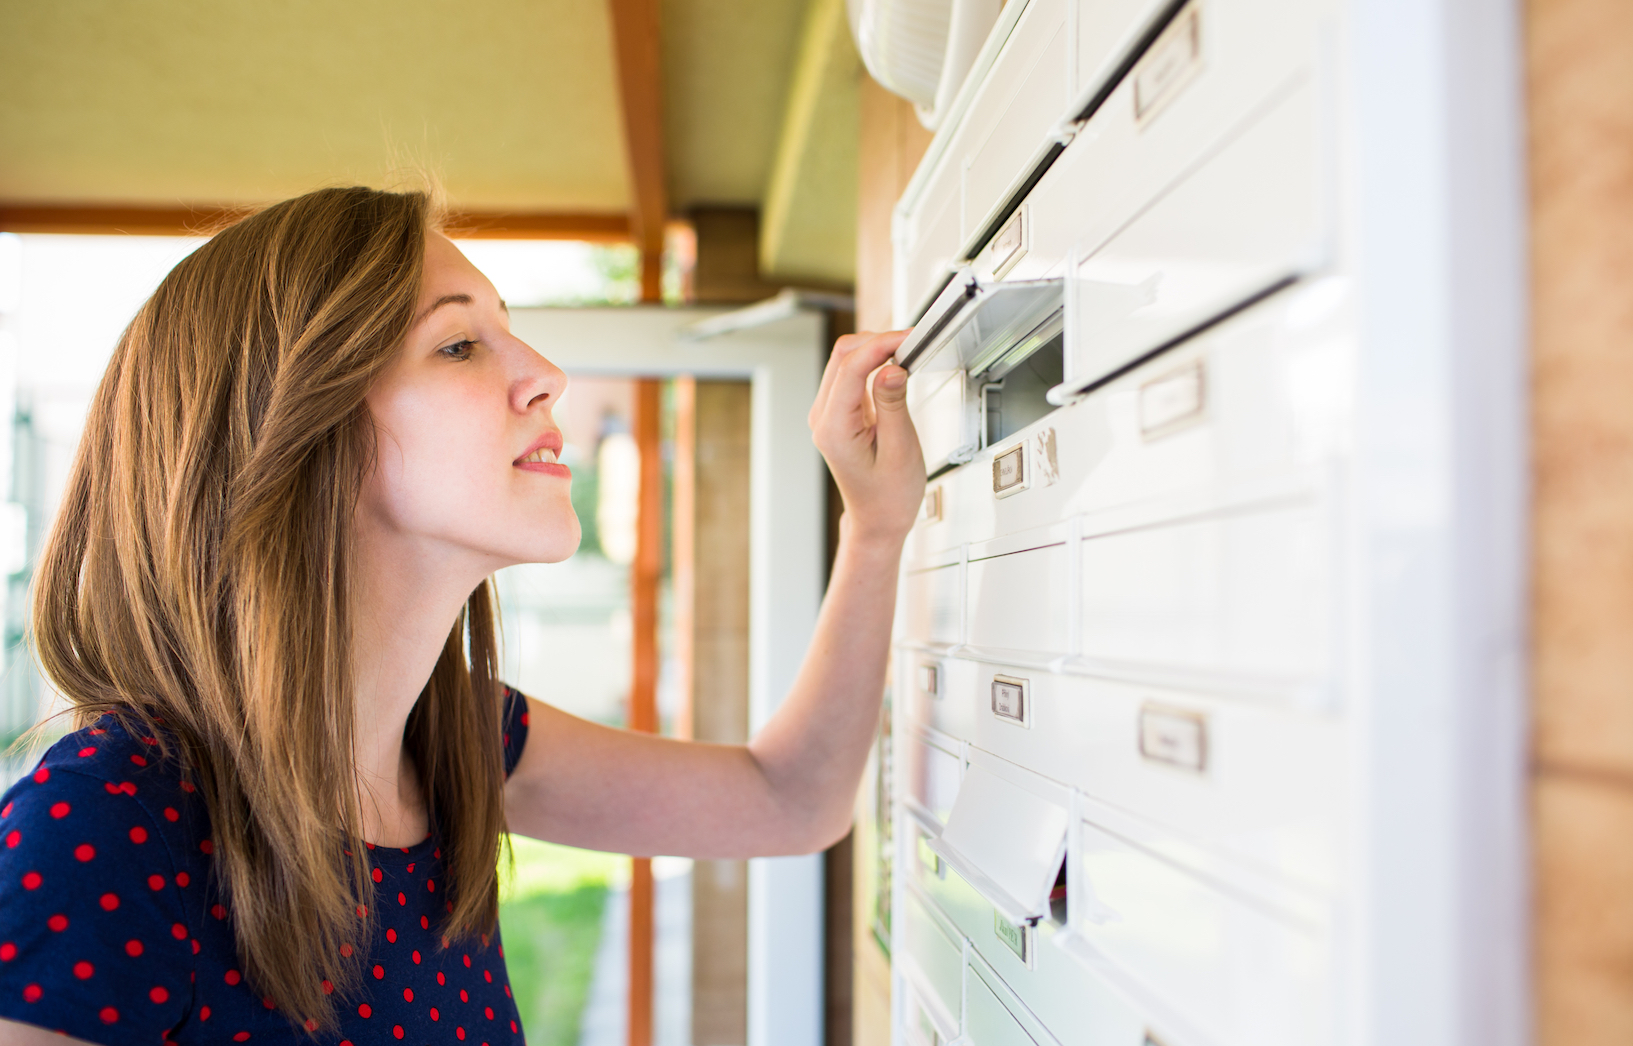 Optimize direct mail to save money, engage customers